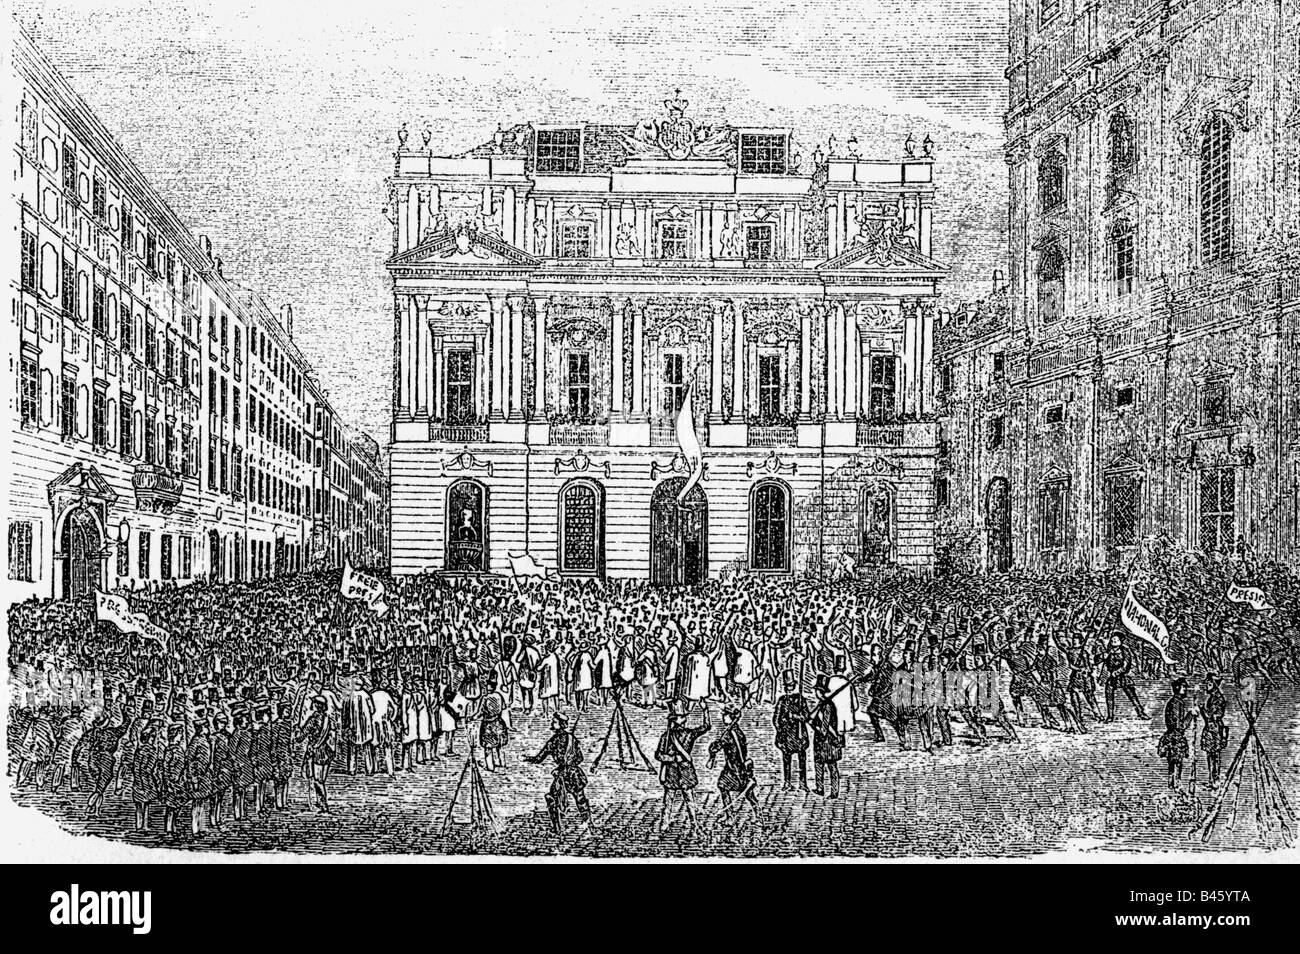 a study of 1848 revolutions Czechoslovakia revolutions of 1848 the paris revolution of february 1848 precipitated a succession of liberal and national revolts against autocratic governments.